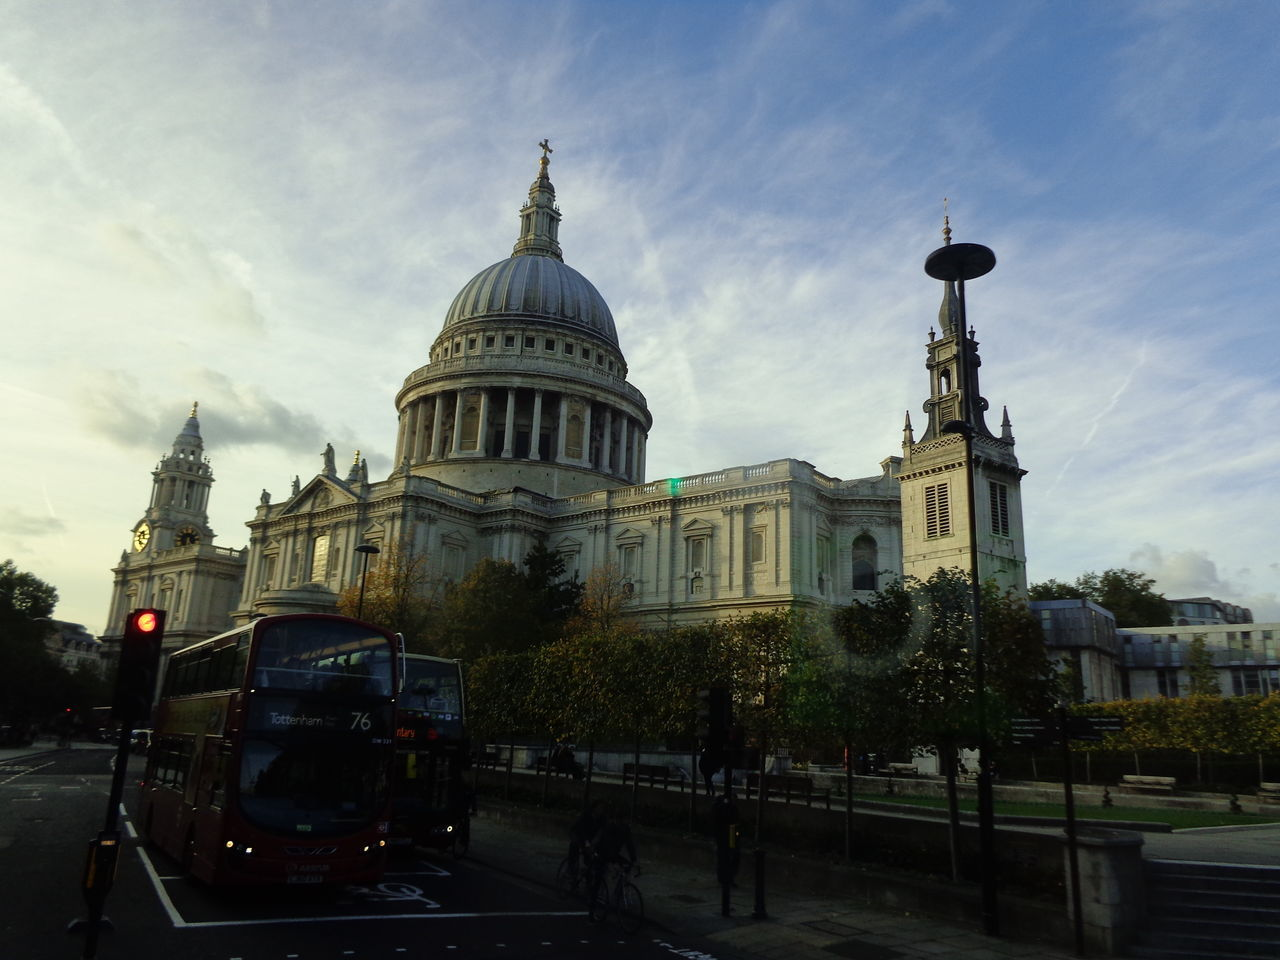 Architecture Dome Built Structure City Building Exterior Religion Place Of Worship Government Sky Cloud - Sky Outdoors No People Day No Filter EyeEmNewHere No Filter, No Edit, Just Photography No Filters Or Effects Dynamic London London Bus St Paul's Cathedral Streets Of London Dynamic Sky Uk Greatbritain